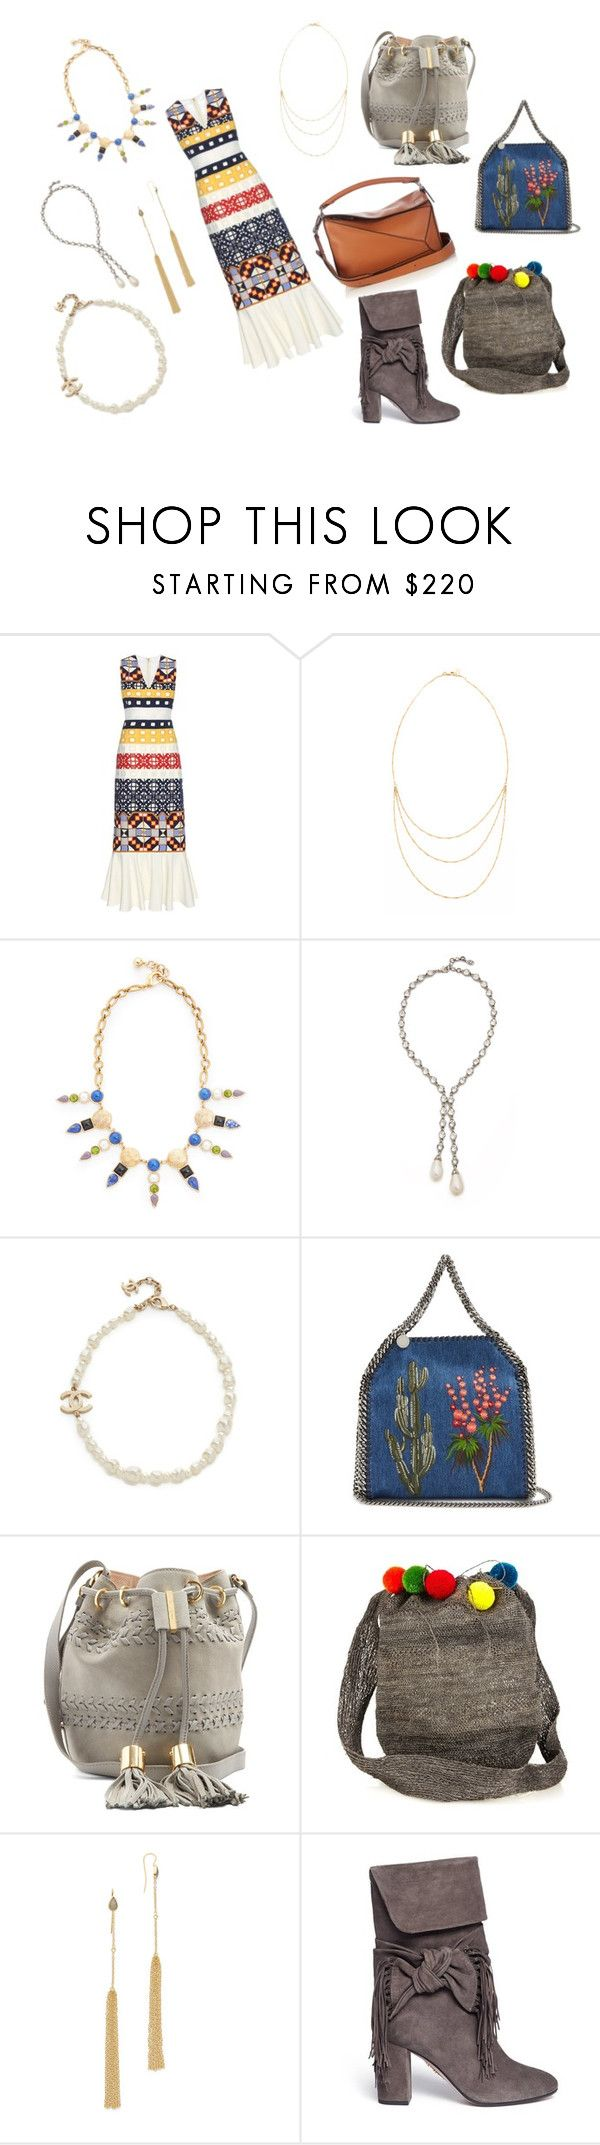 """""""Be anything but predictable"""" by racheal-taylor ❤ liked on Polyvore featuring Teatum Jones, Phyllis + Rosie, Lulu Frost, Ben-Amun, STELLA McCARTNEY, See by Chloé, Muzungu Sisters, Jacquie Aiche, Aquazzura and Loewe"""